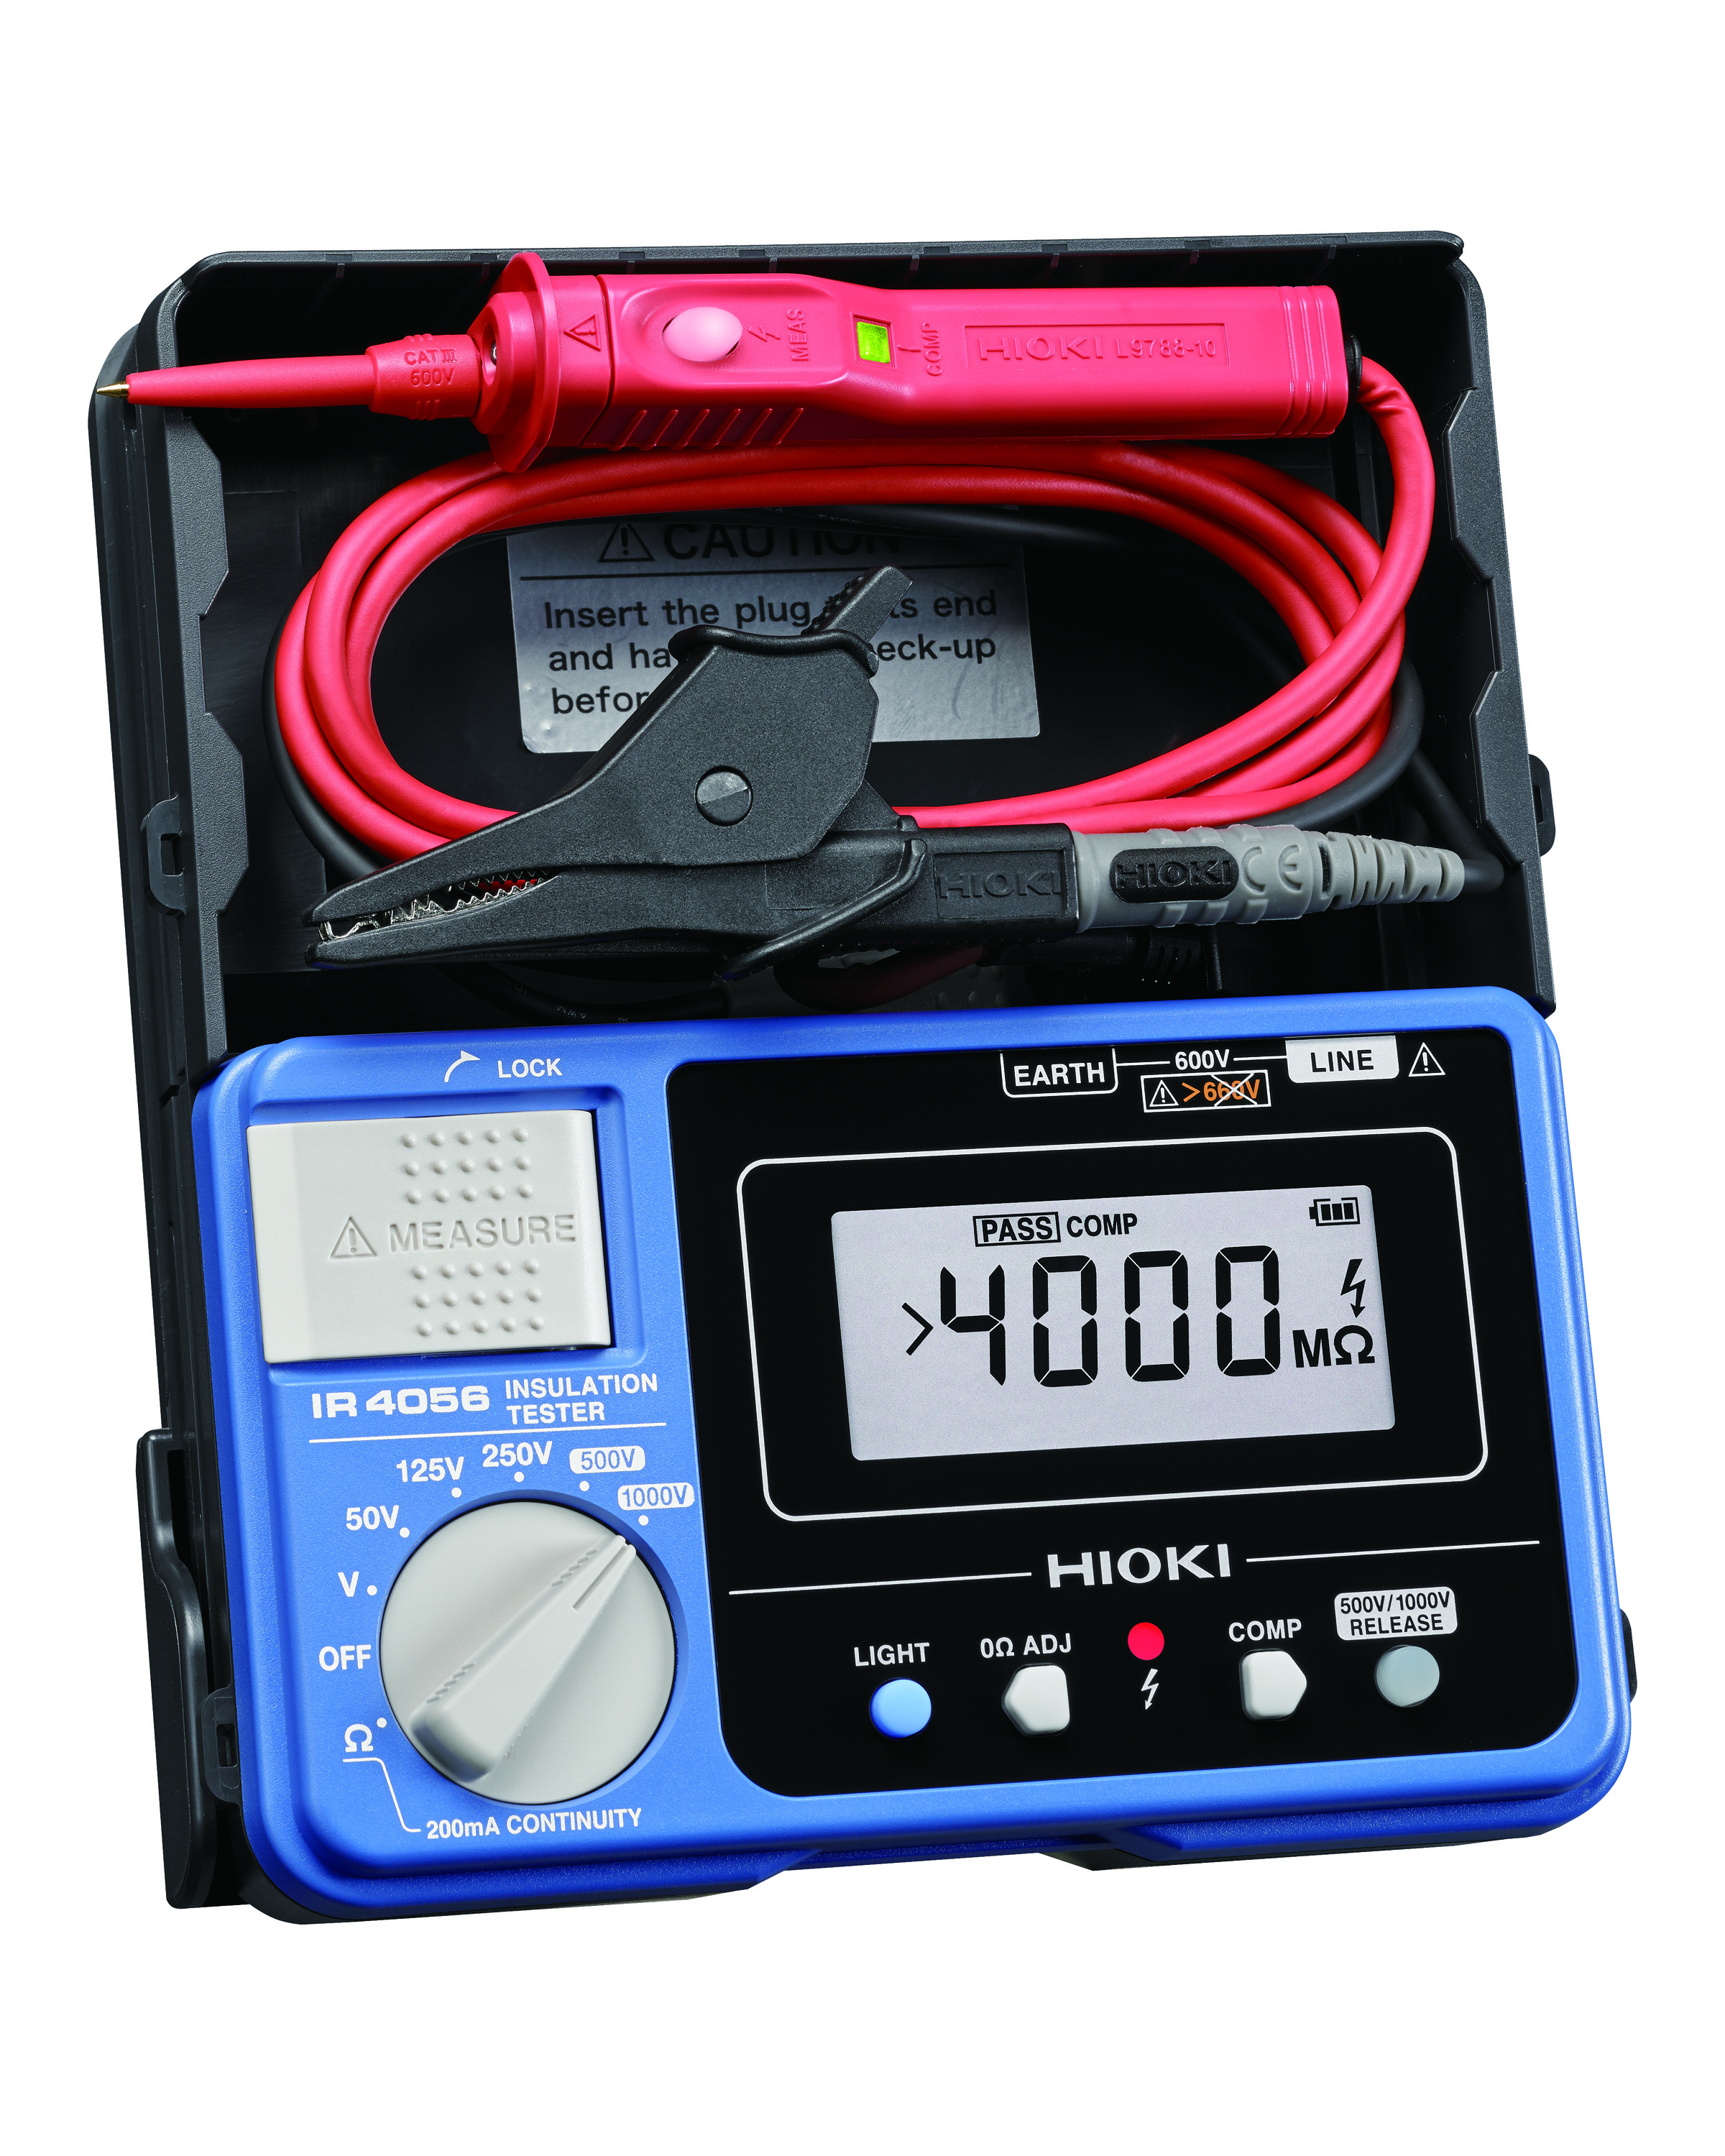 TESTER INSULATION DIGITAL 5 RANGE TO 1000V CAT III 600V